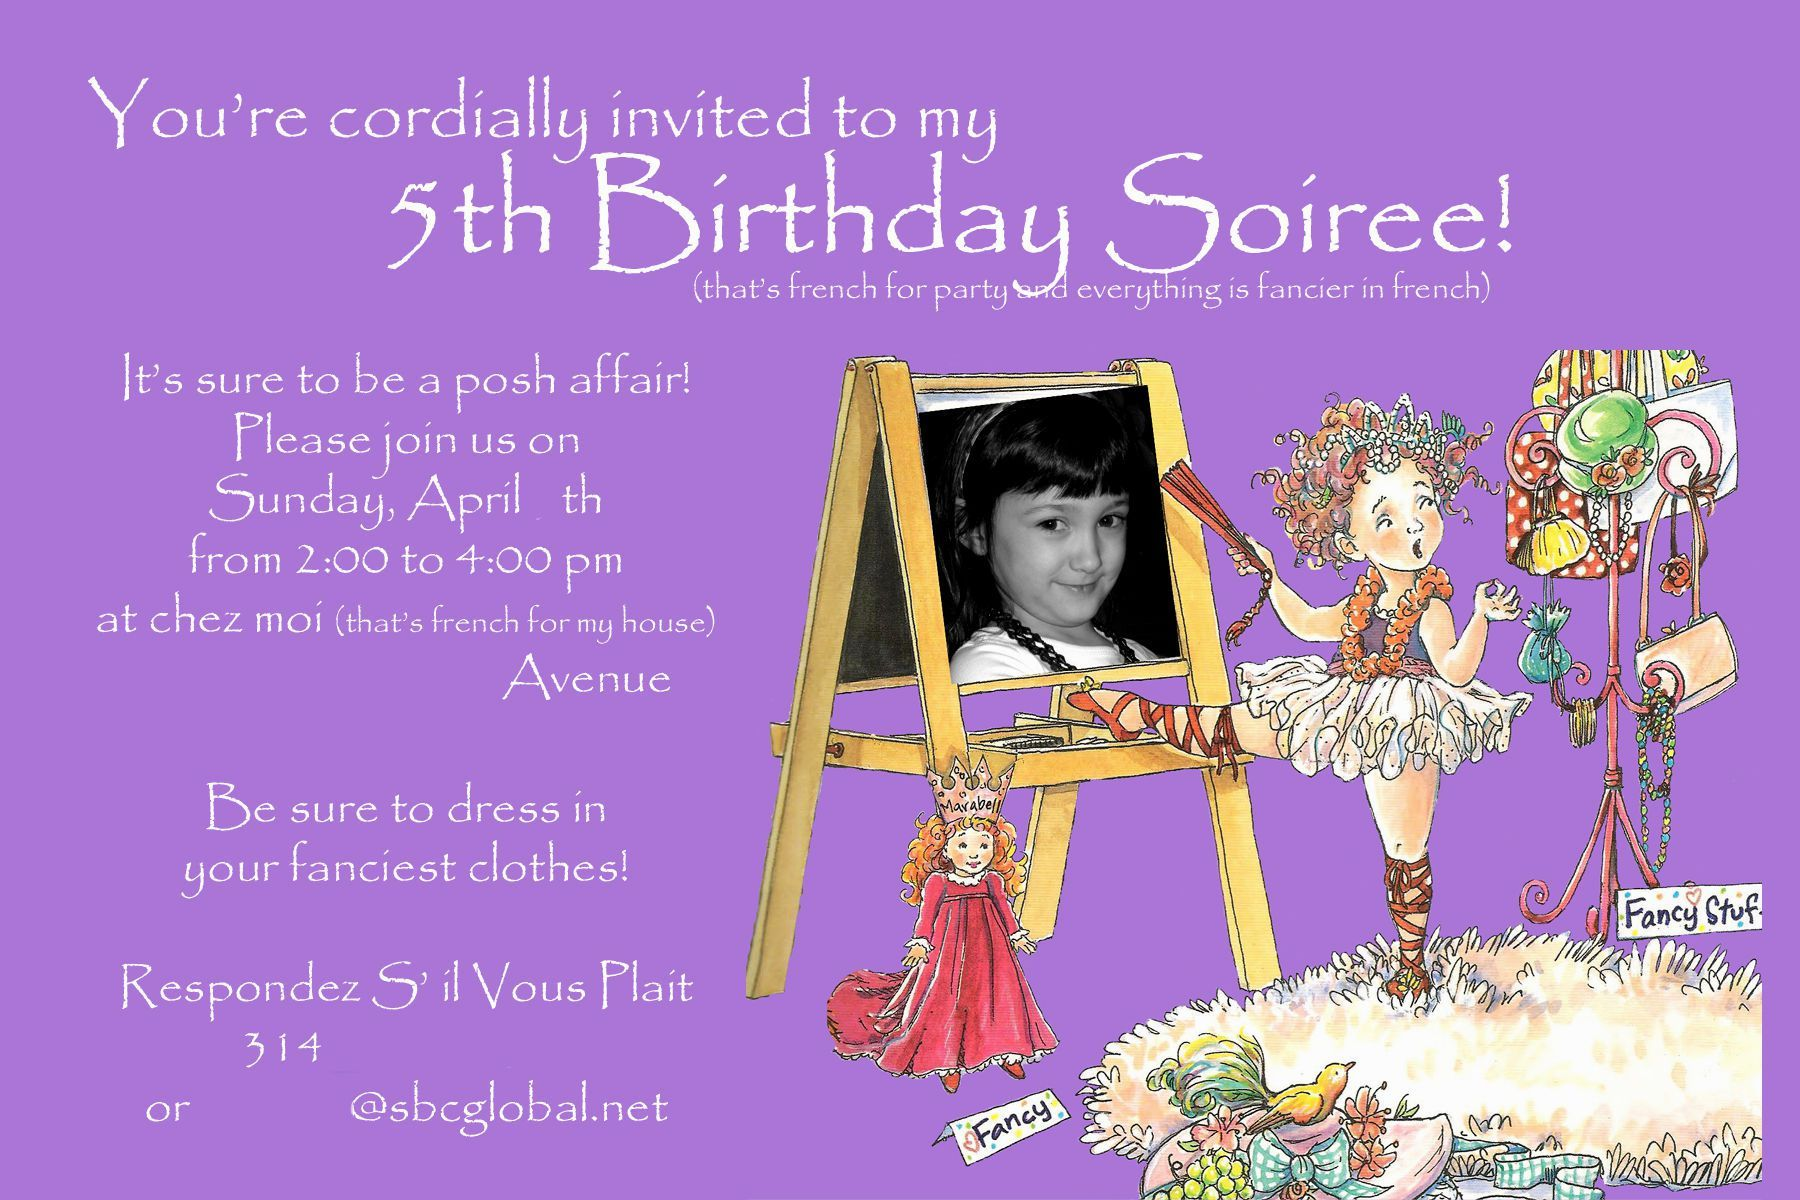 birthday invitation maker download ; 81d3ebe31f358ed4eafe293ab7e3f64d